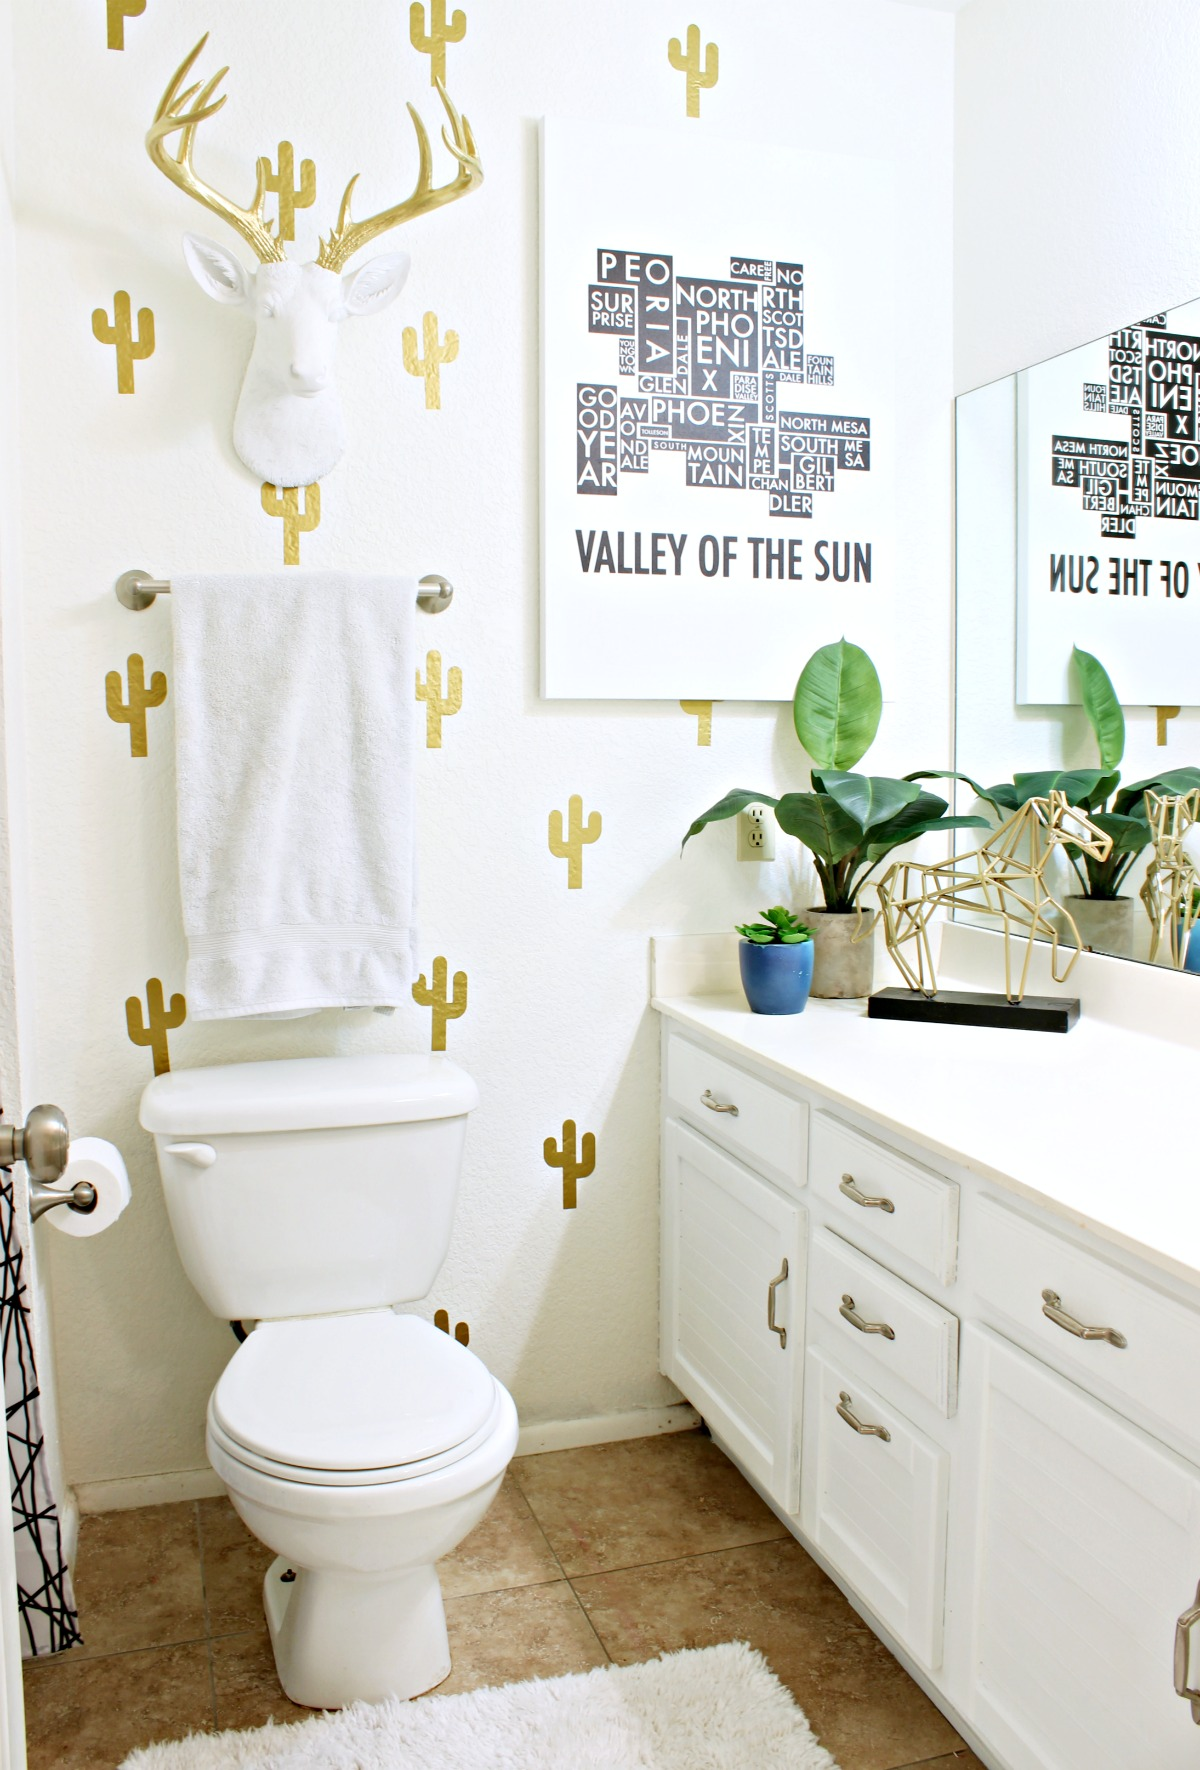 How to paint a bathroom vanity classy clutter - Small kids bathroom ideas ...